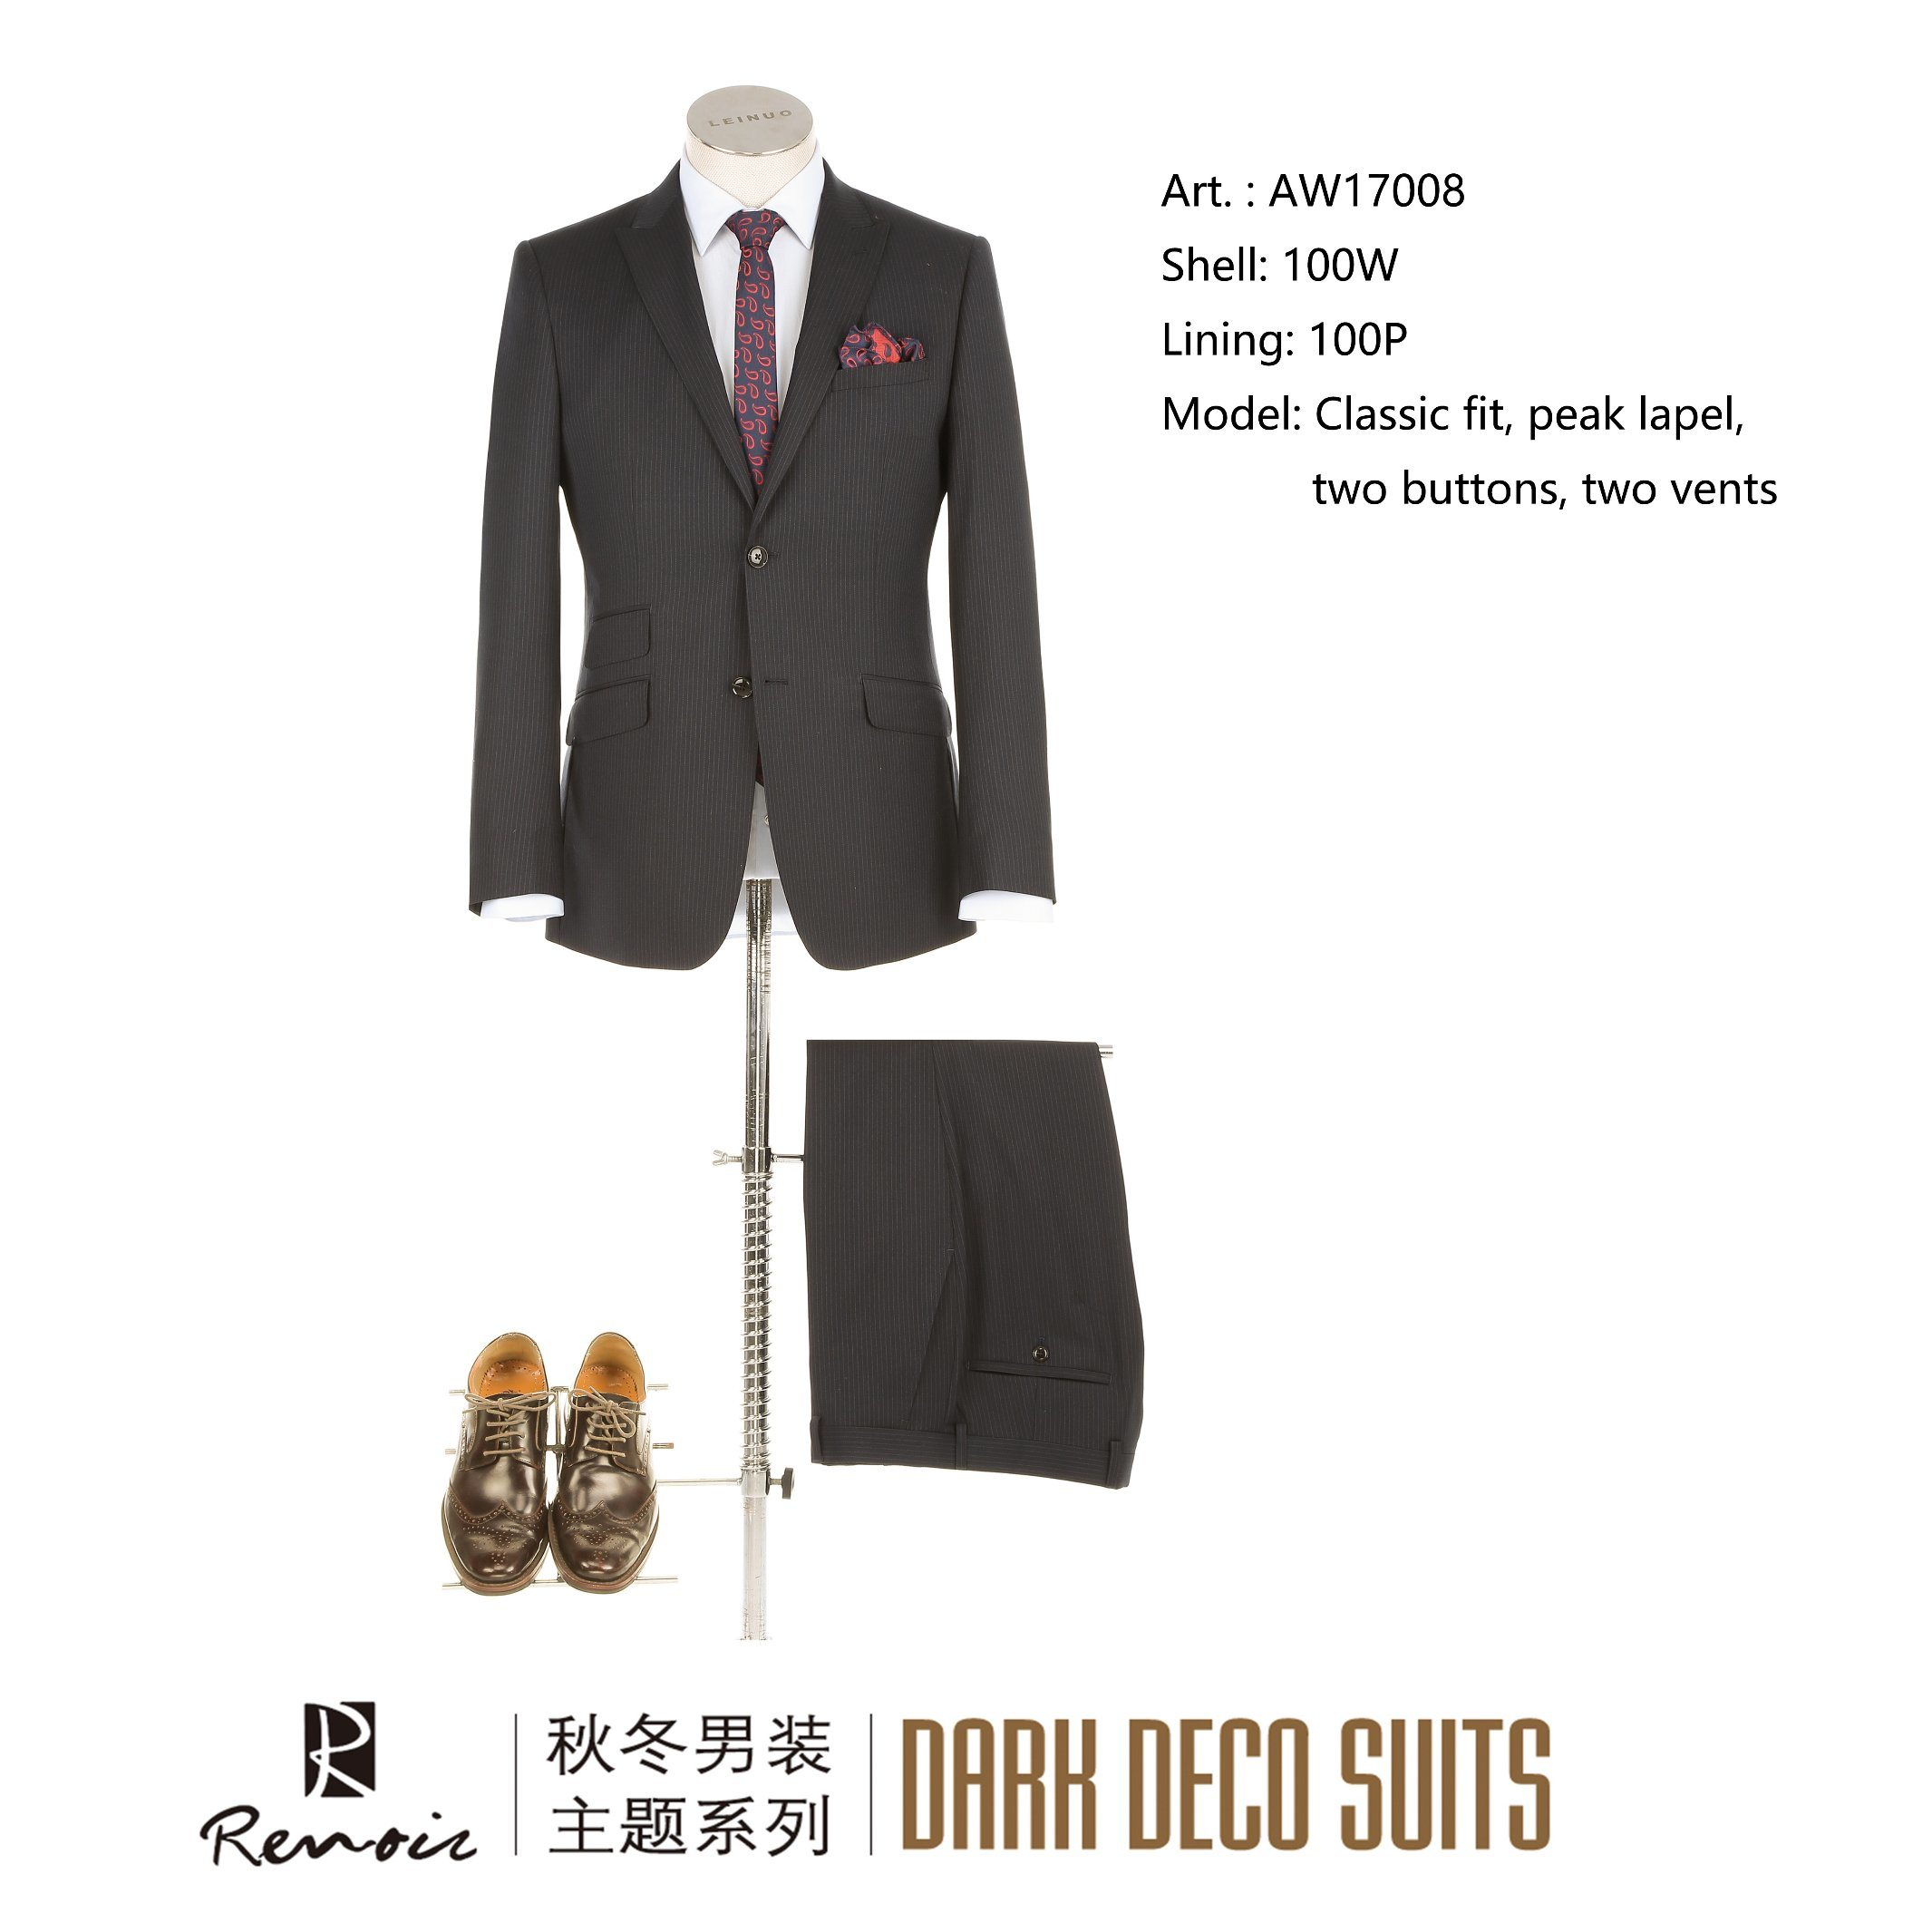 OEM 2 Piece Peak Lapel Classic Fit Men′s Business Suit